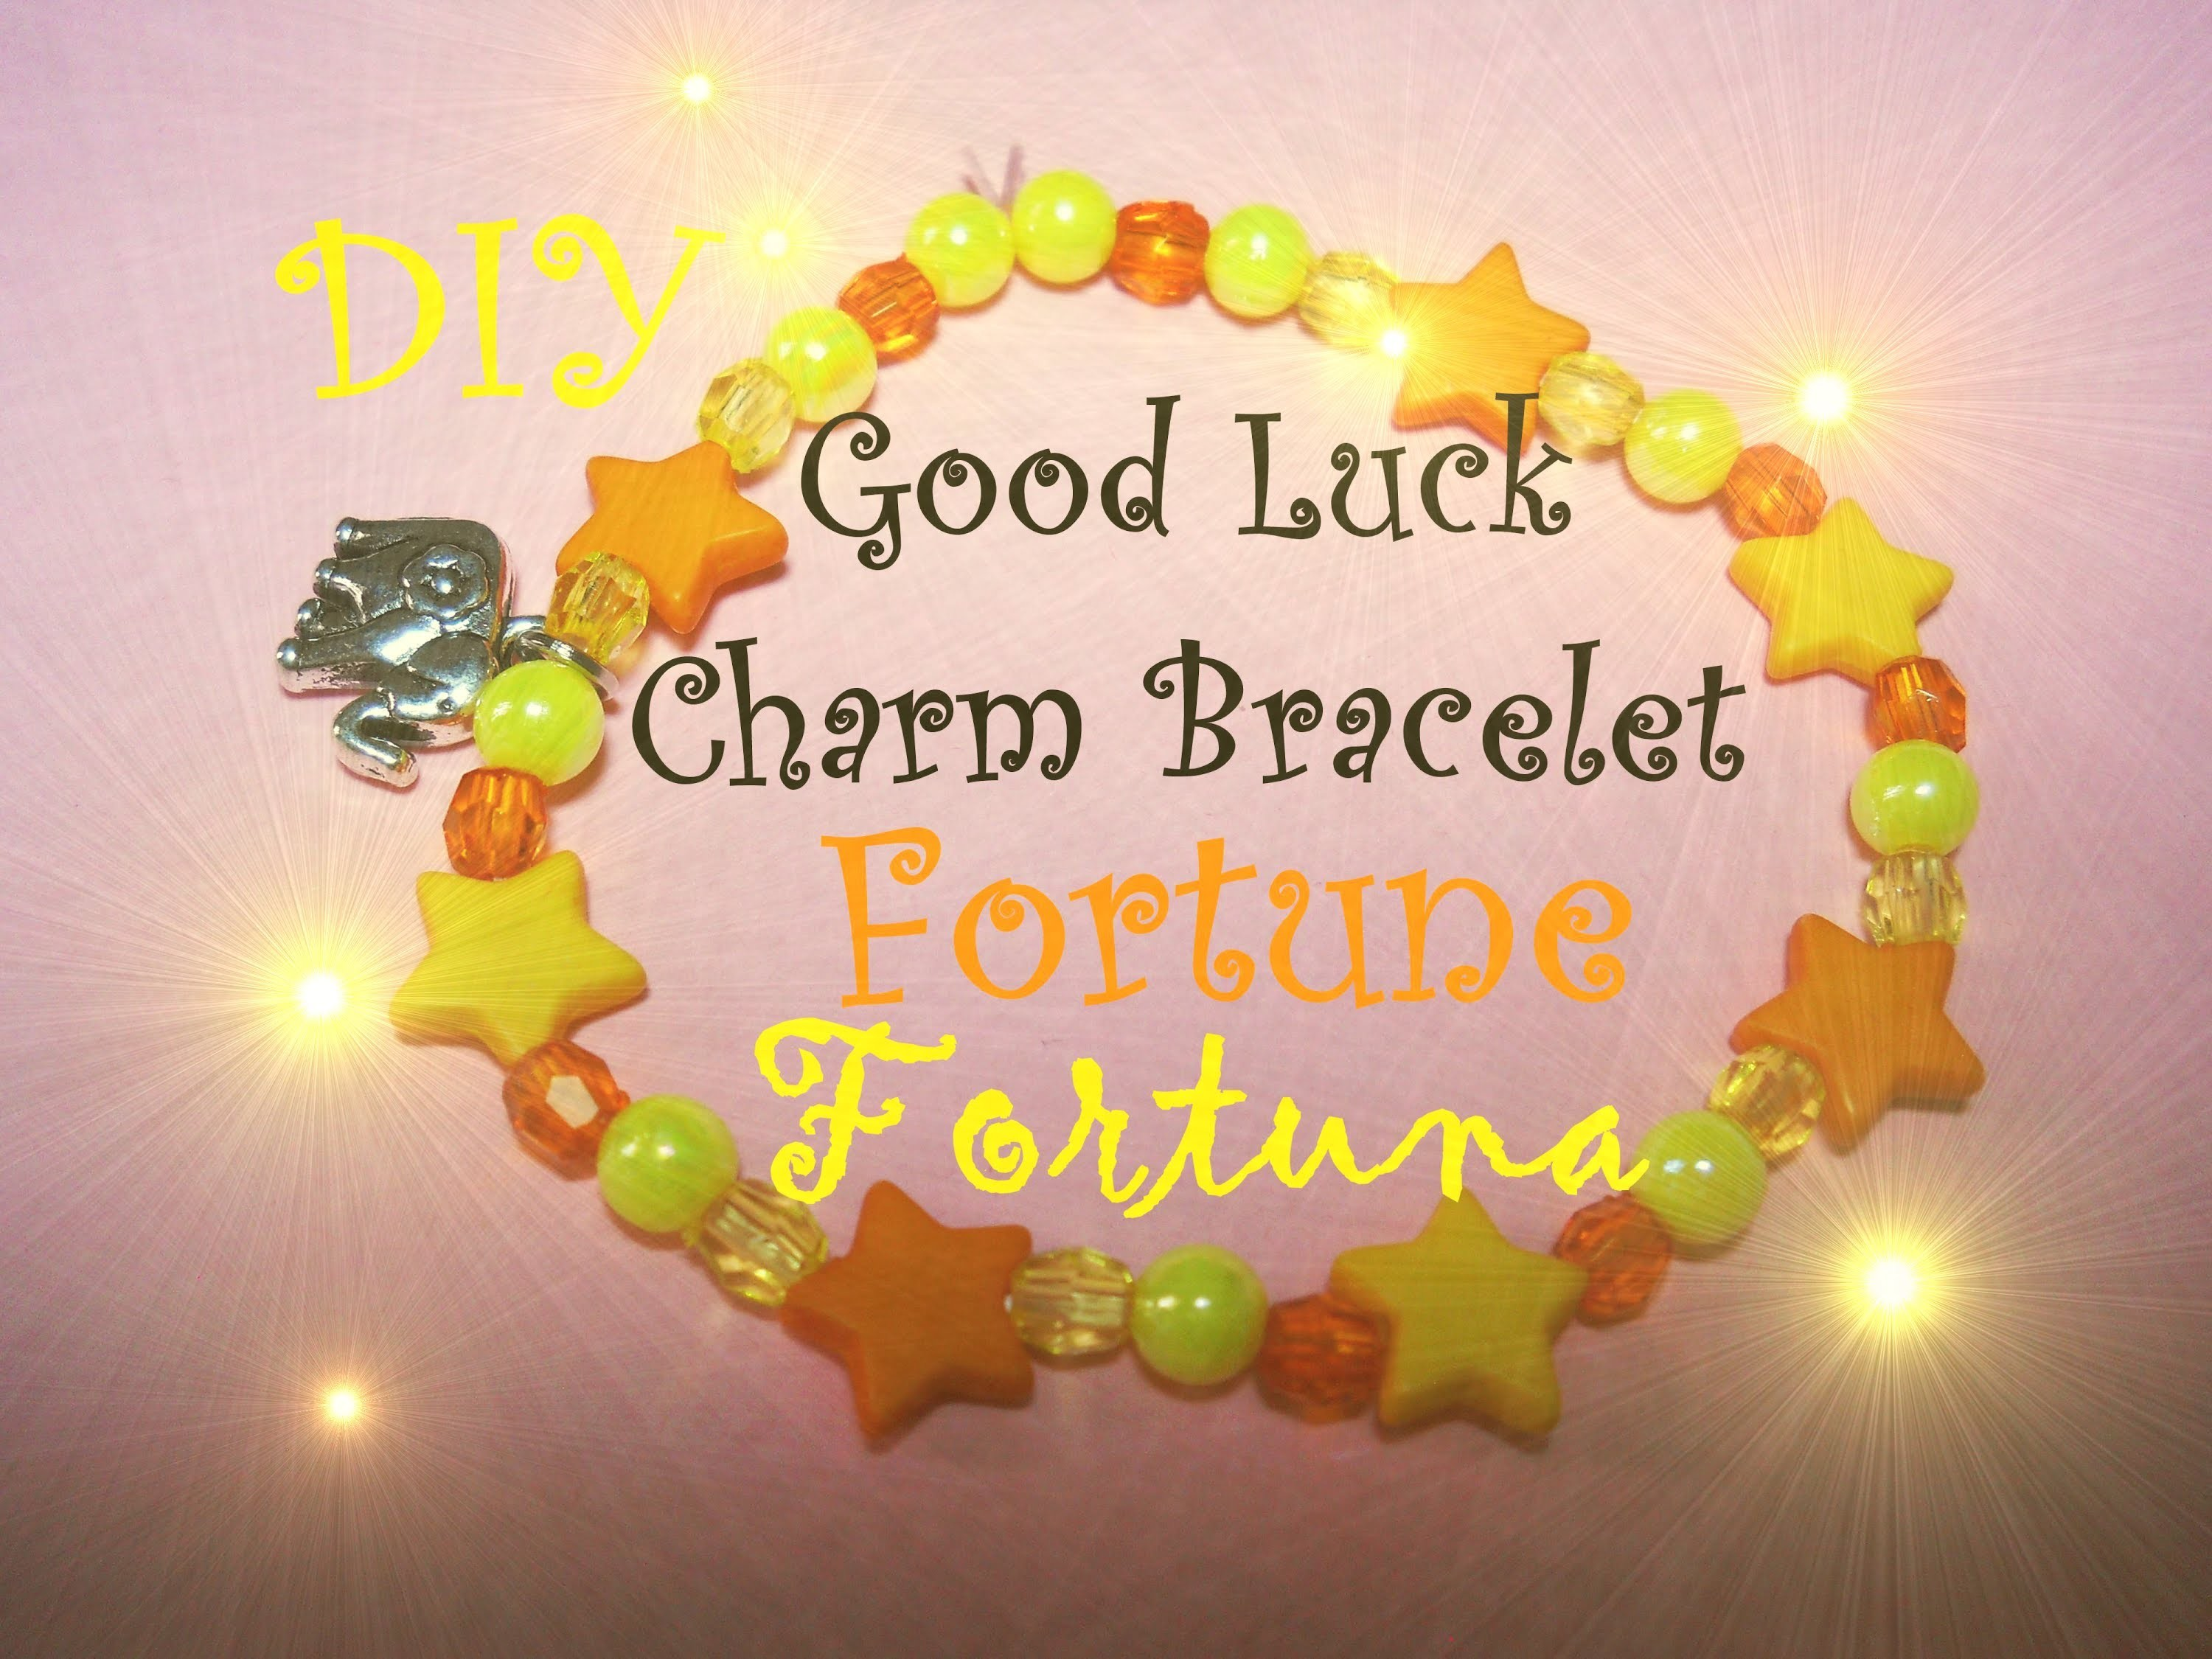 Good Luck Charm Bracelet ✧ Fortune. Luck ✧ Braccialetto della Fortuna - Tutorial. DIY. How to